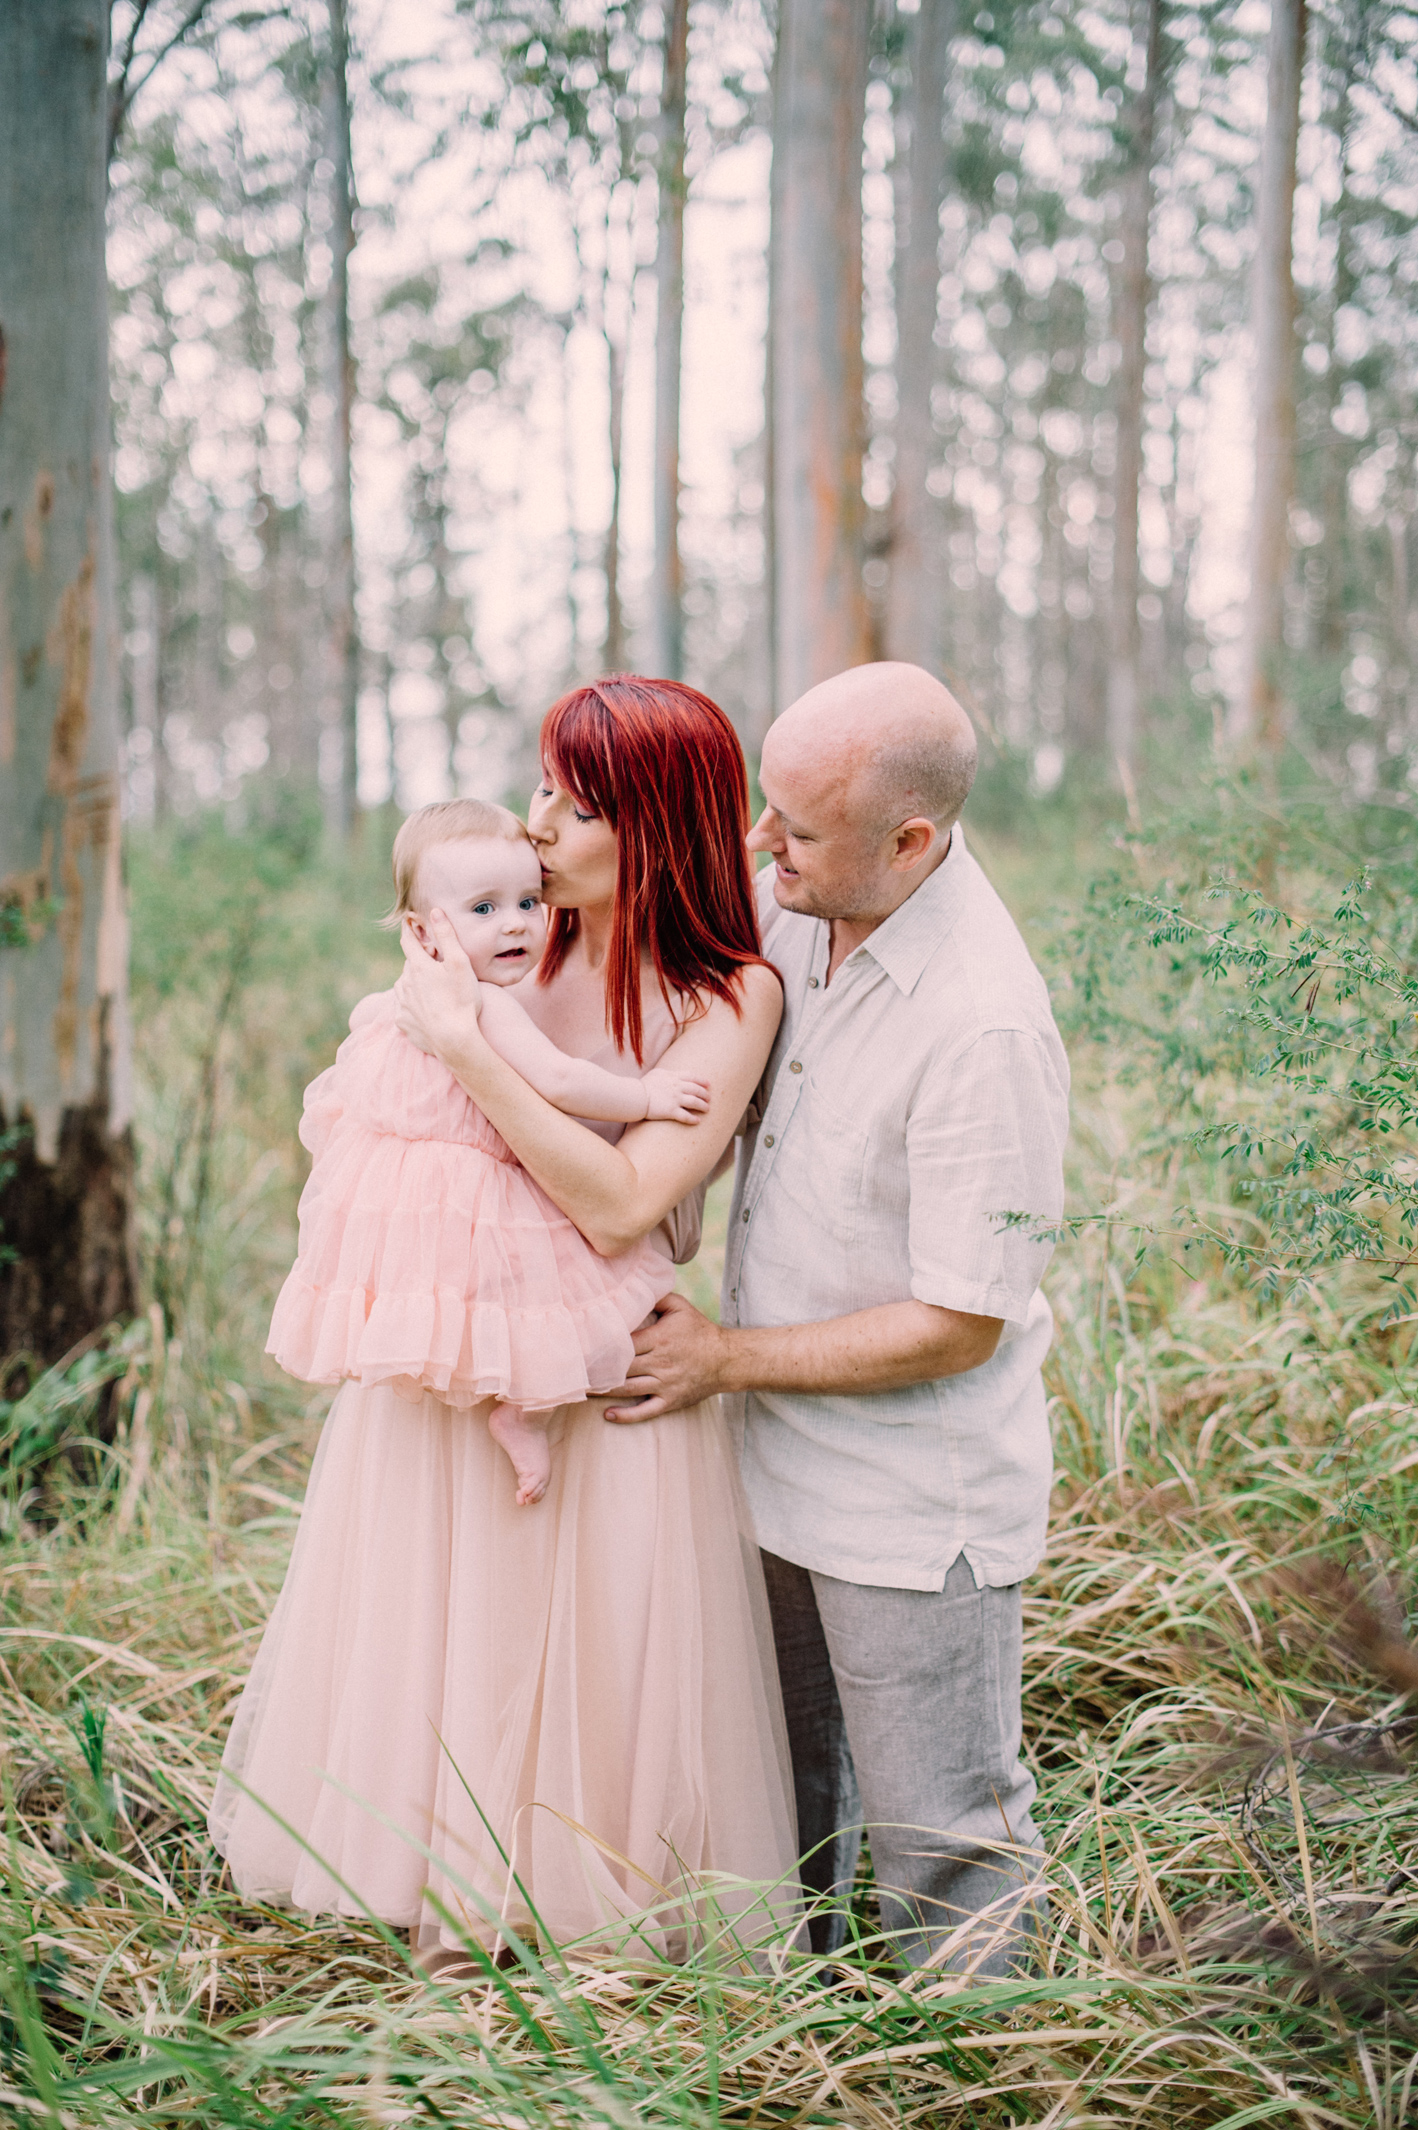 004-family-photos-crown-of-eden-mount-tamborine-sophie-baker-photography